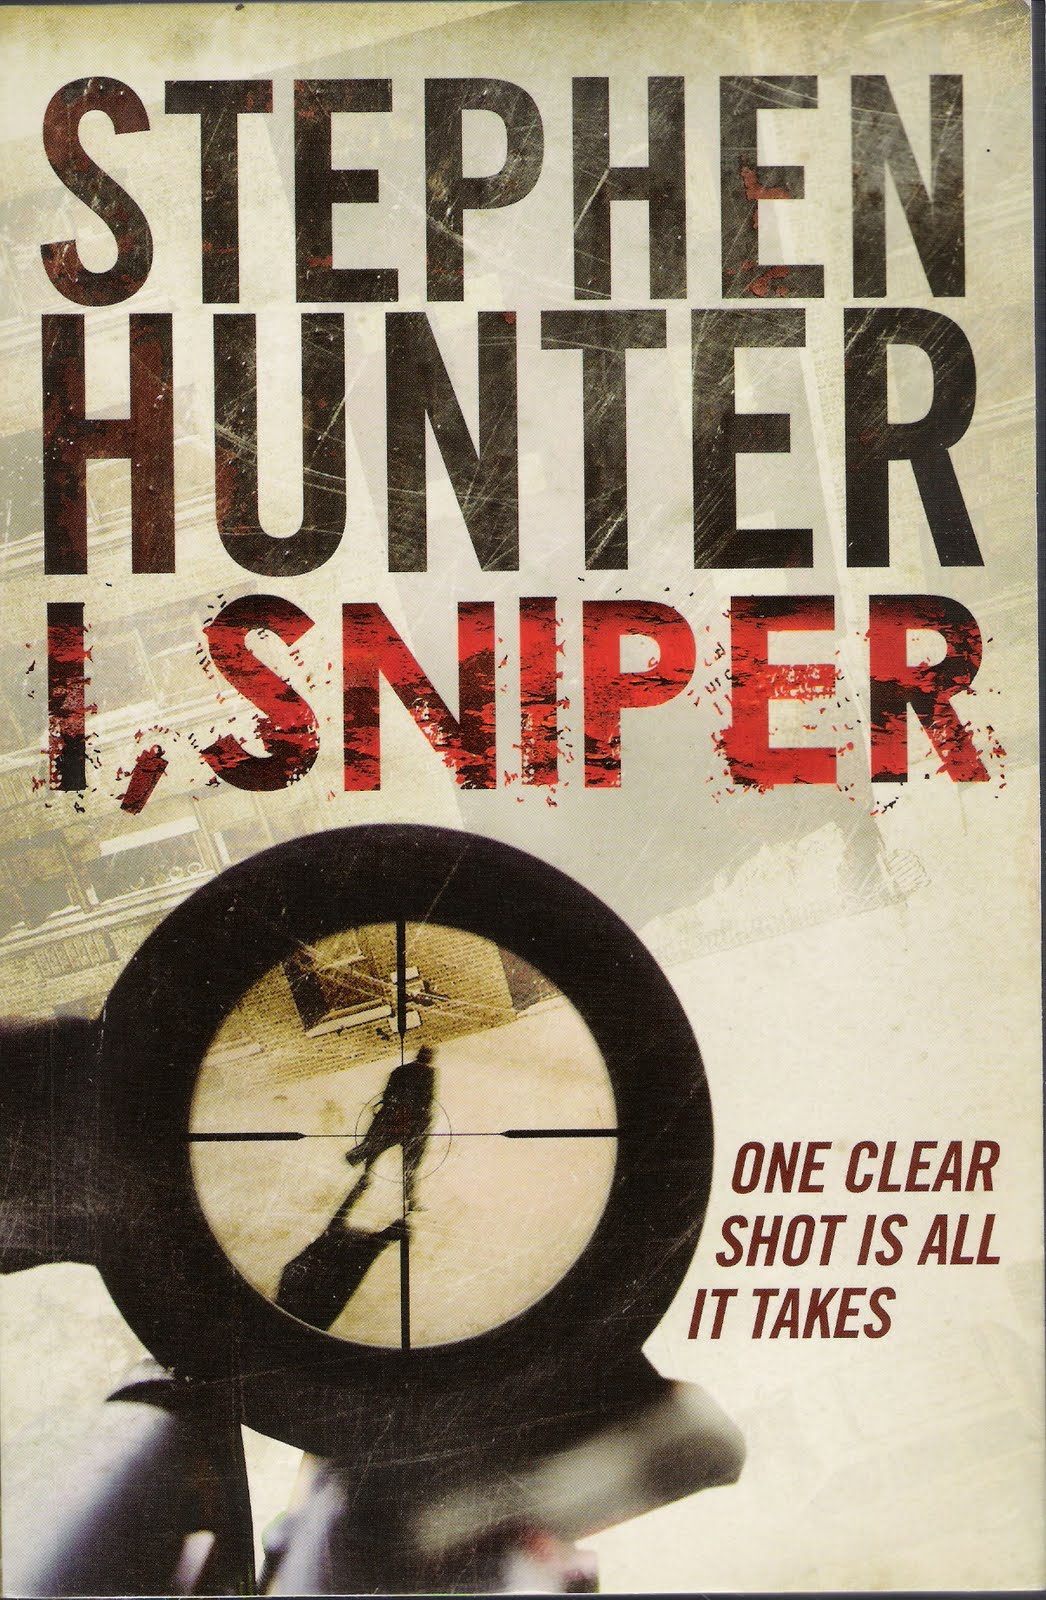 This 2009 novel about former Marine Corps sniper Bob Lee Swagger is the  best of the Sniper stories by Stephen Hunter so far.